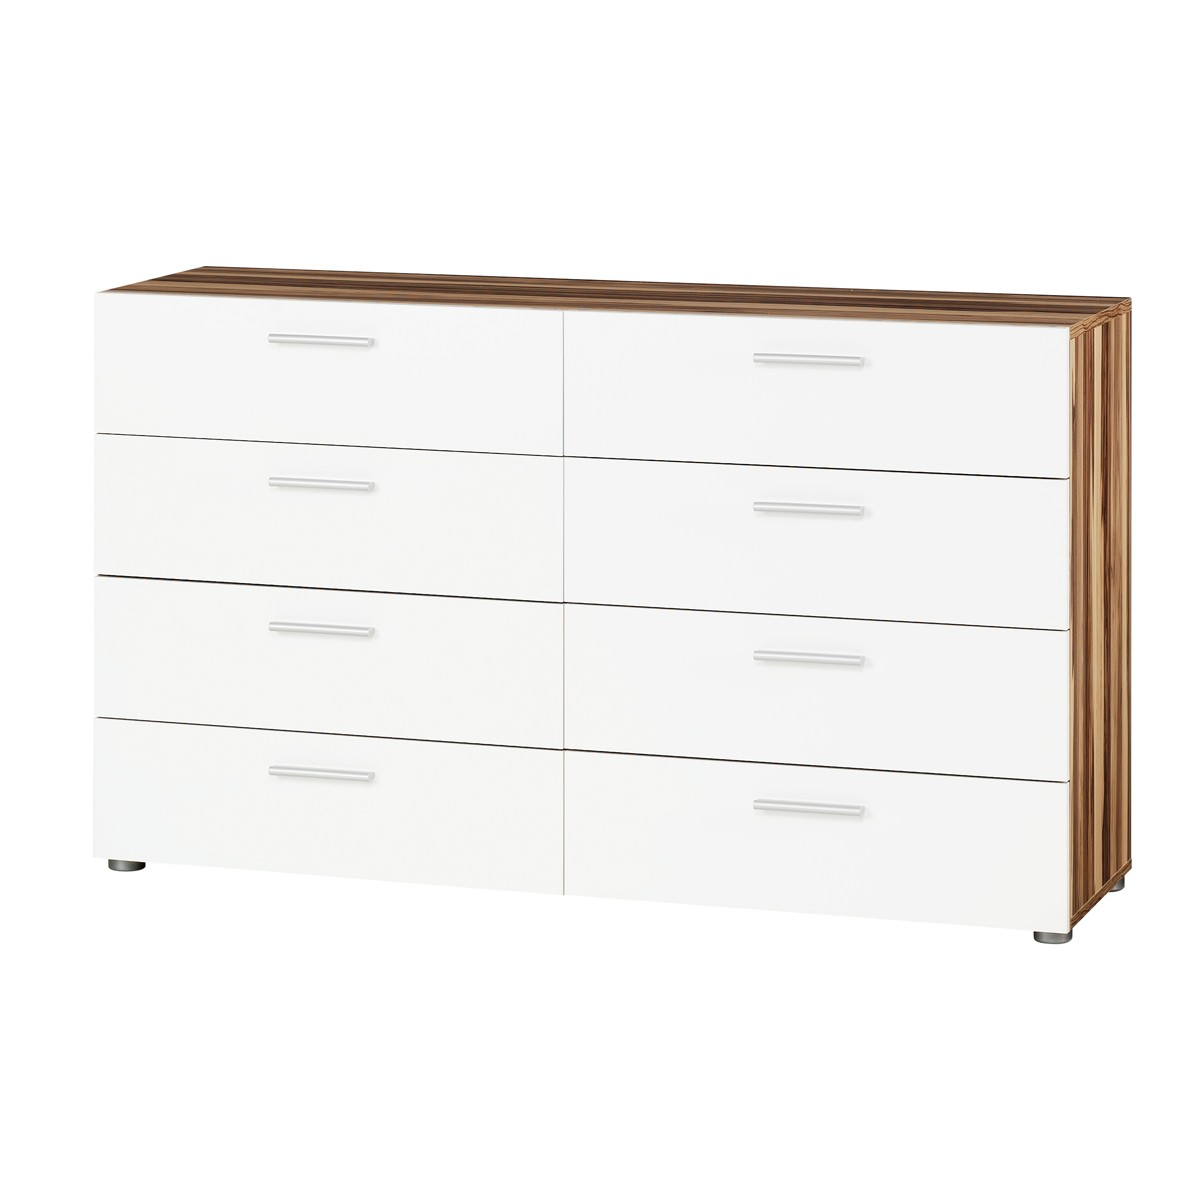 wohnling sideboard lena weiss 60 x 75 cm mit 2 t ren 1 schublade smash. Black Bedroom Furniture Sets. Home Design Ideas